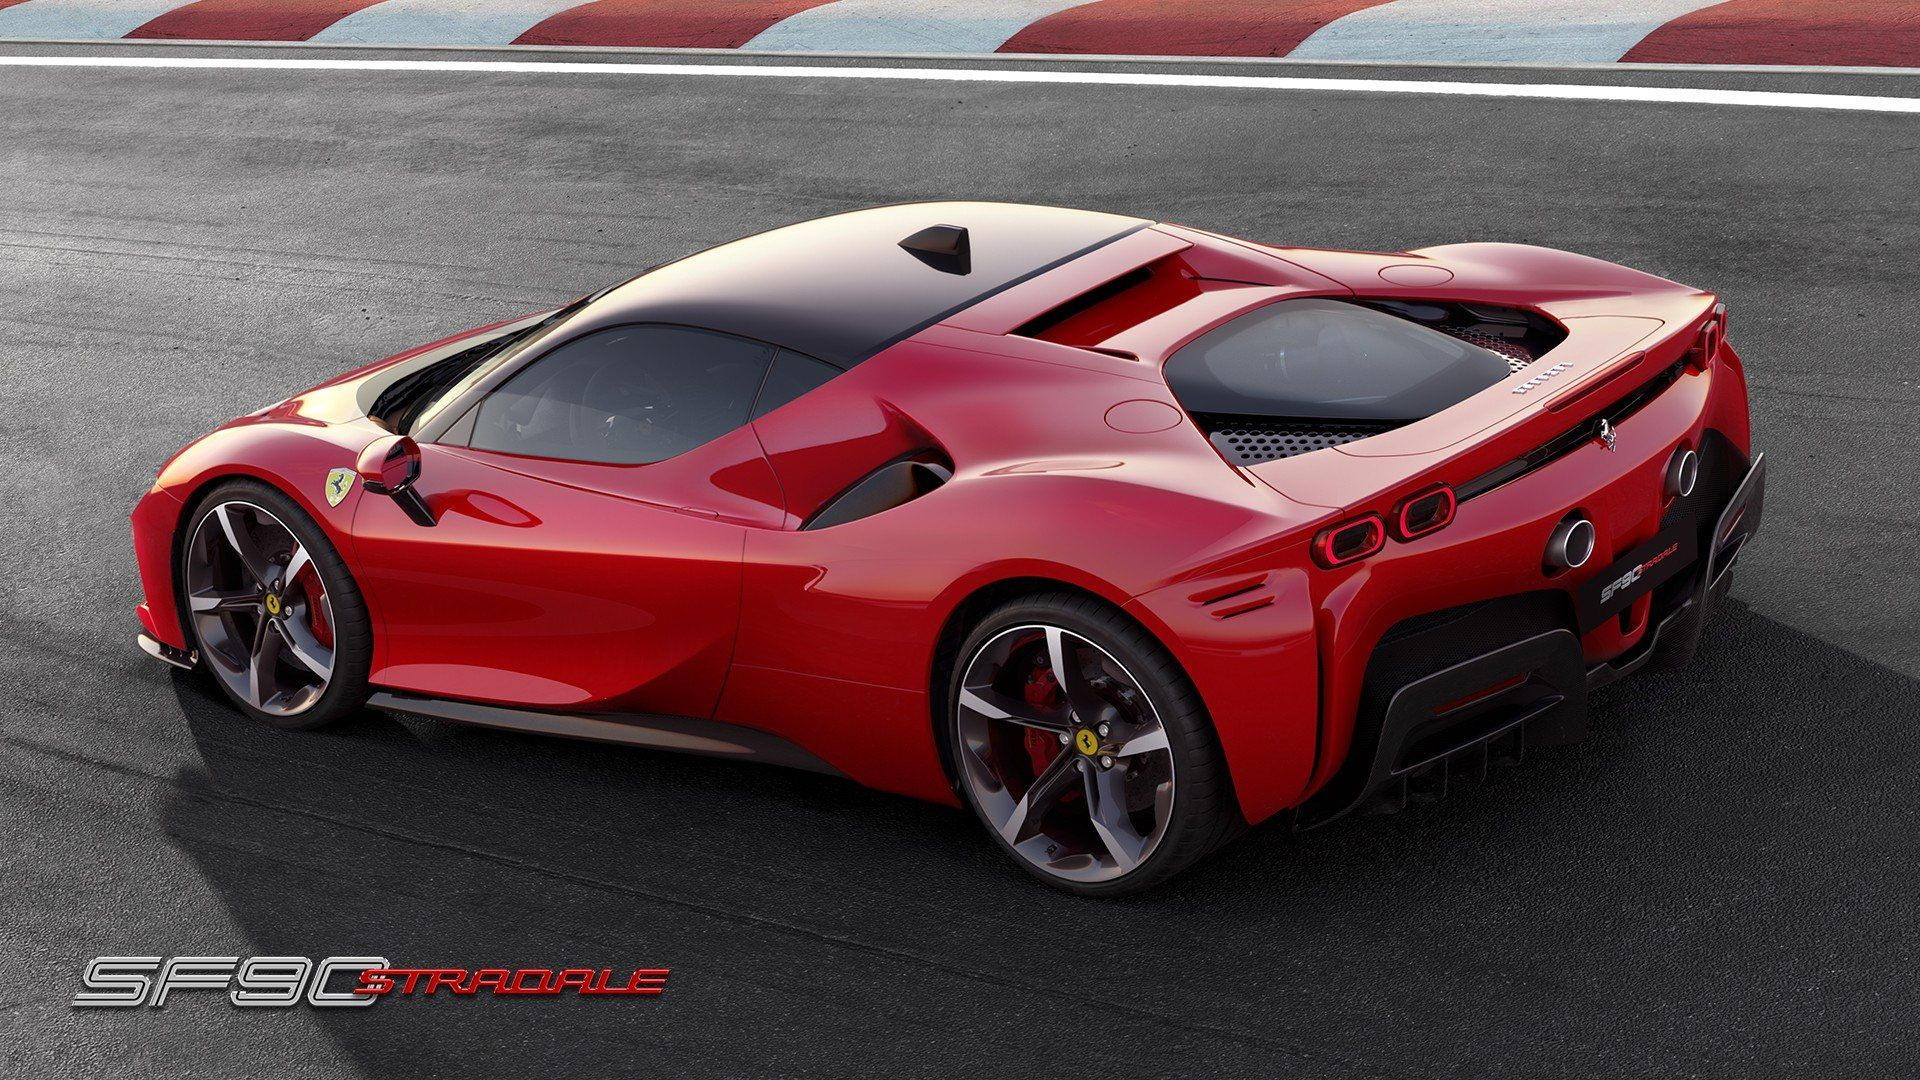 2021 Ford Gt Supercar Price Design And Review In 2020 Super Cars New Ferrari Hybrid Sports Car